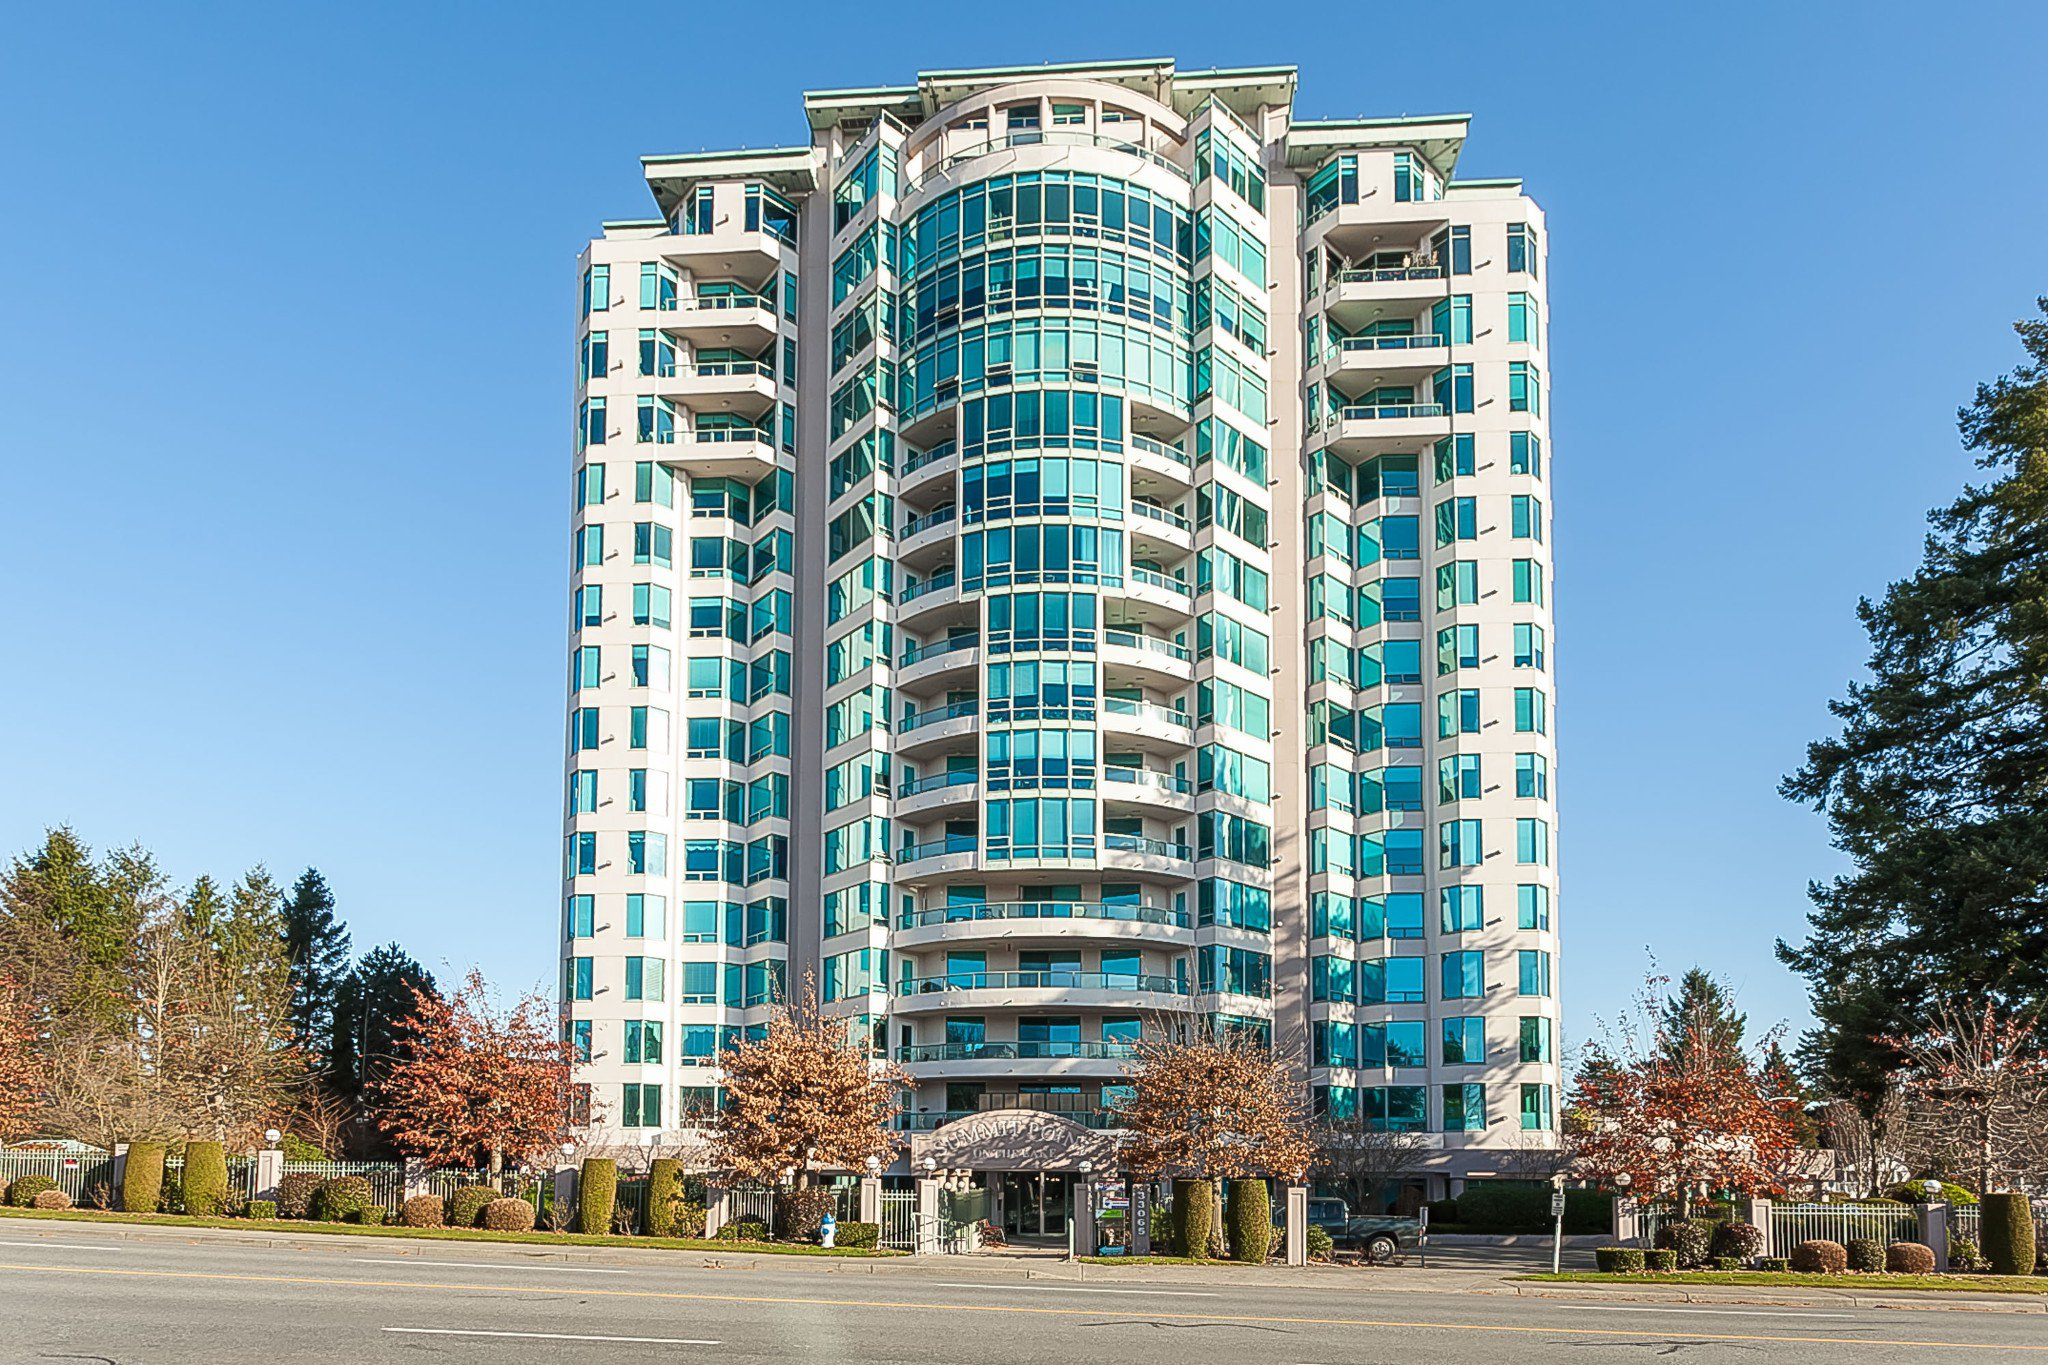 Main Photo: 1504 33065 Mill Lake Road in Abbotsford: Central Abbotsford Condo for sale : MLS®# R2421391